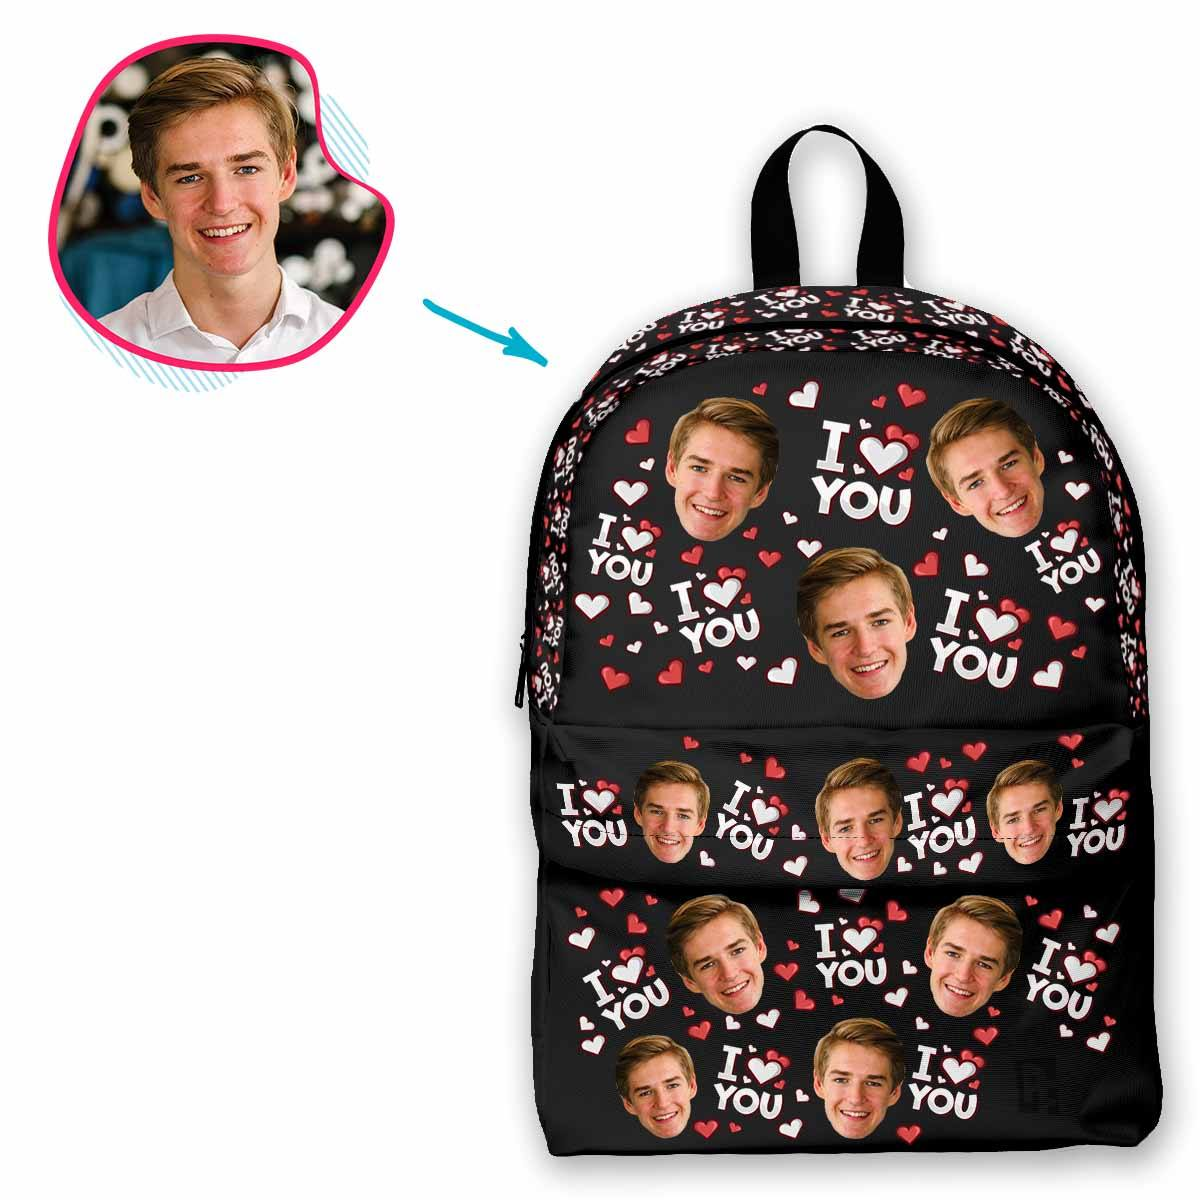 dark I Love You classic backpack personalized with photo of face printed on it